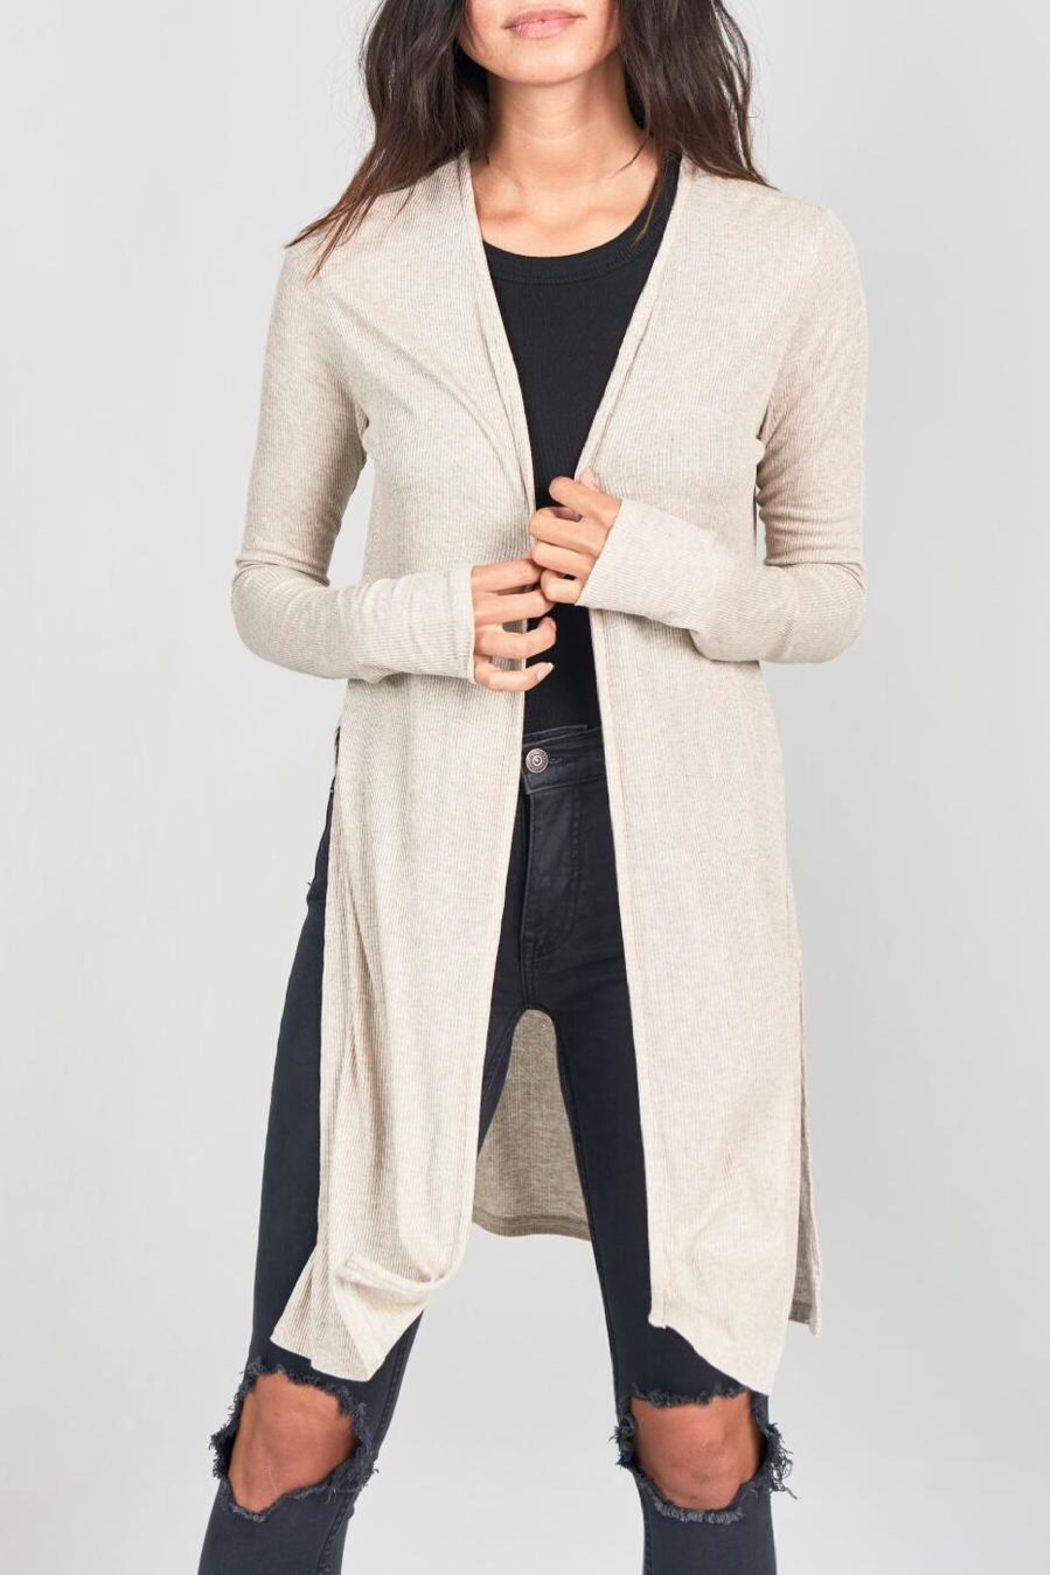 Joah Brown Long Line Open Cardigan - Front Cropped Image